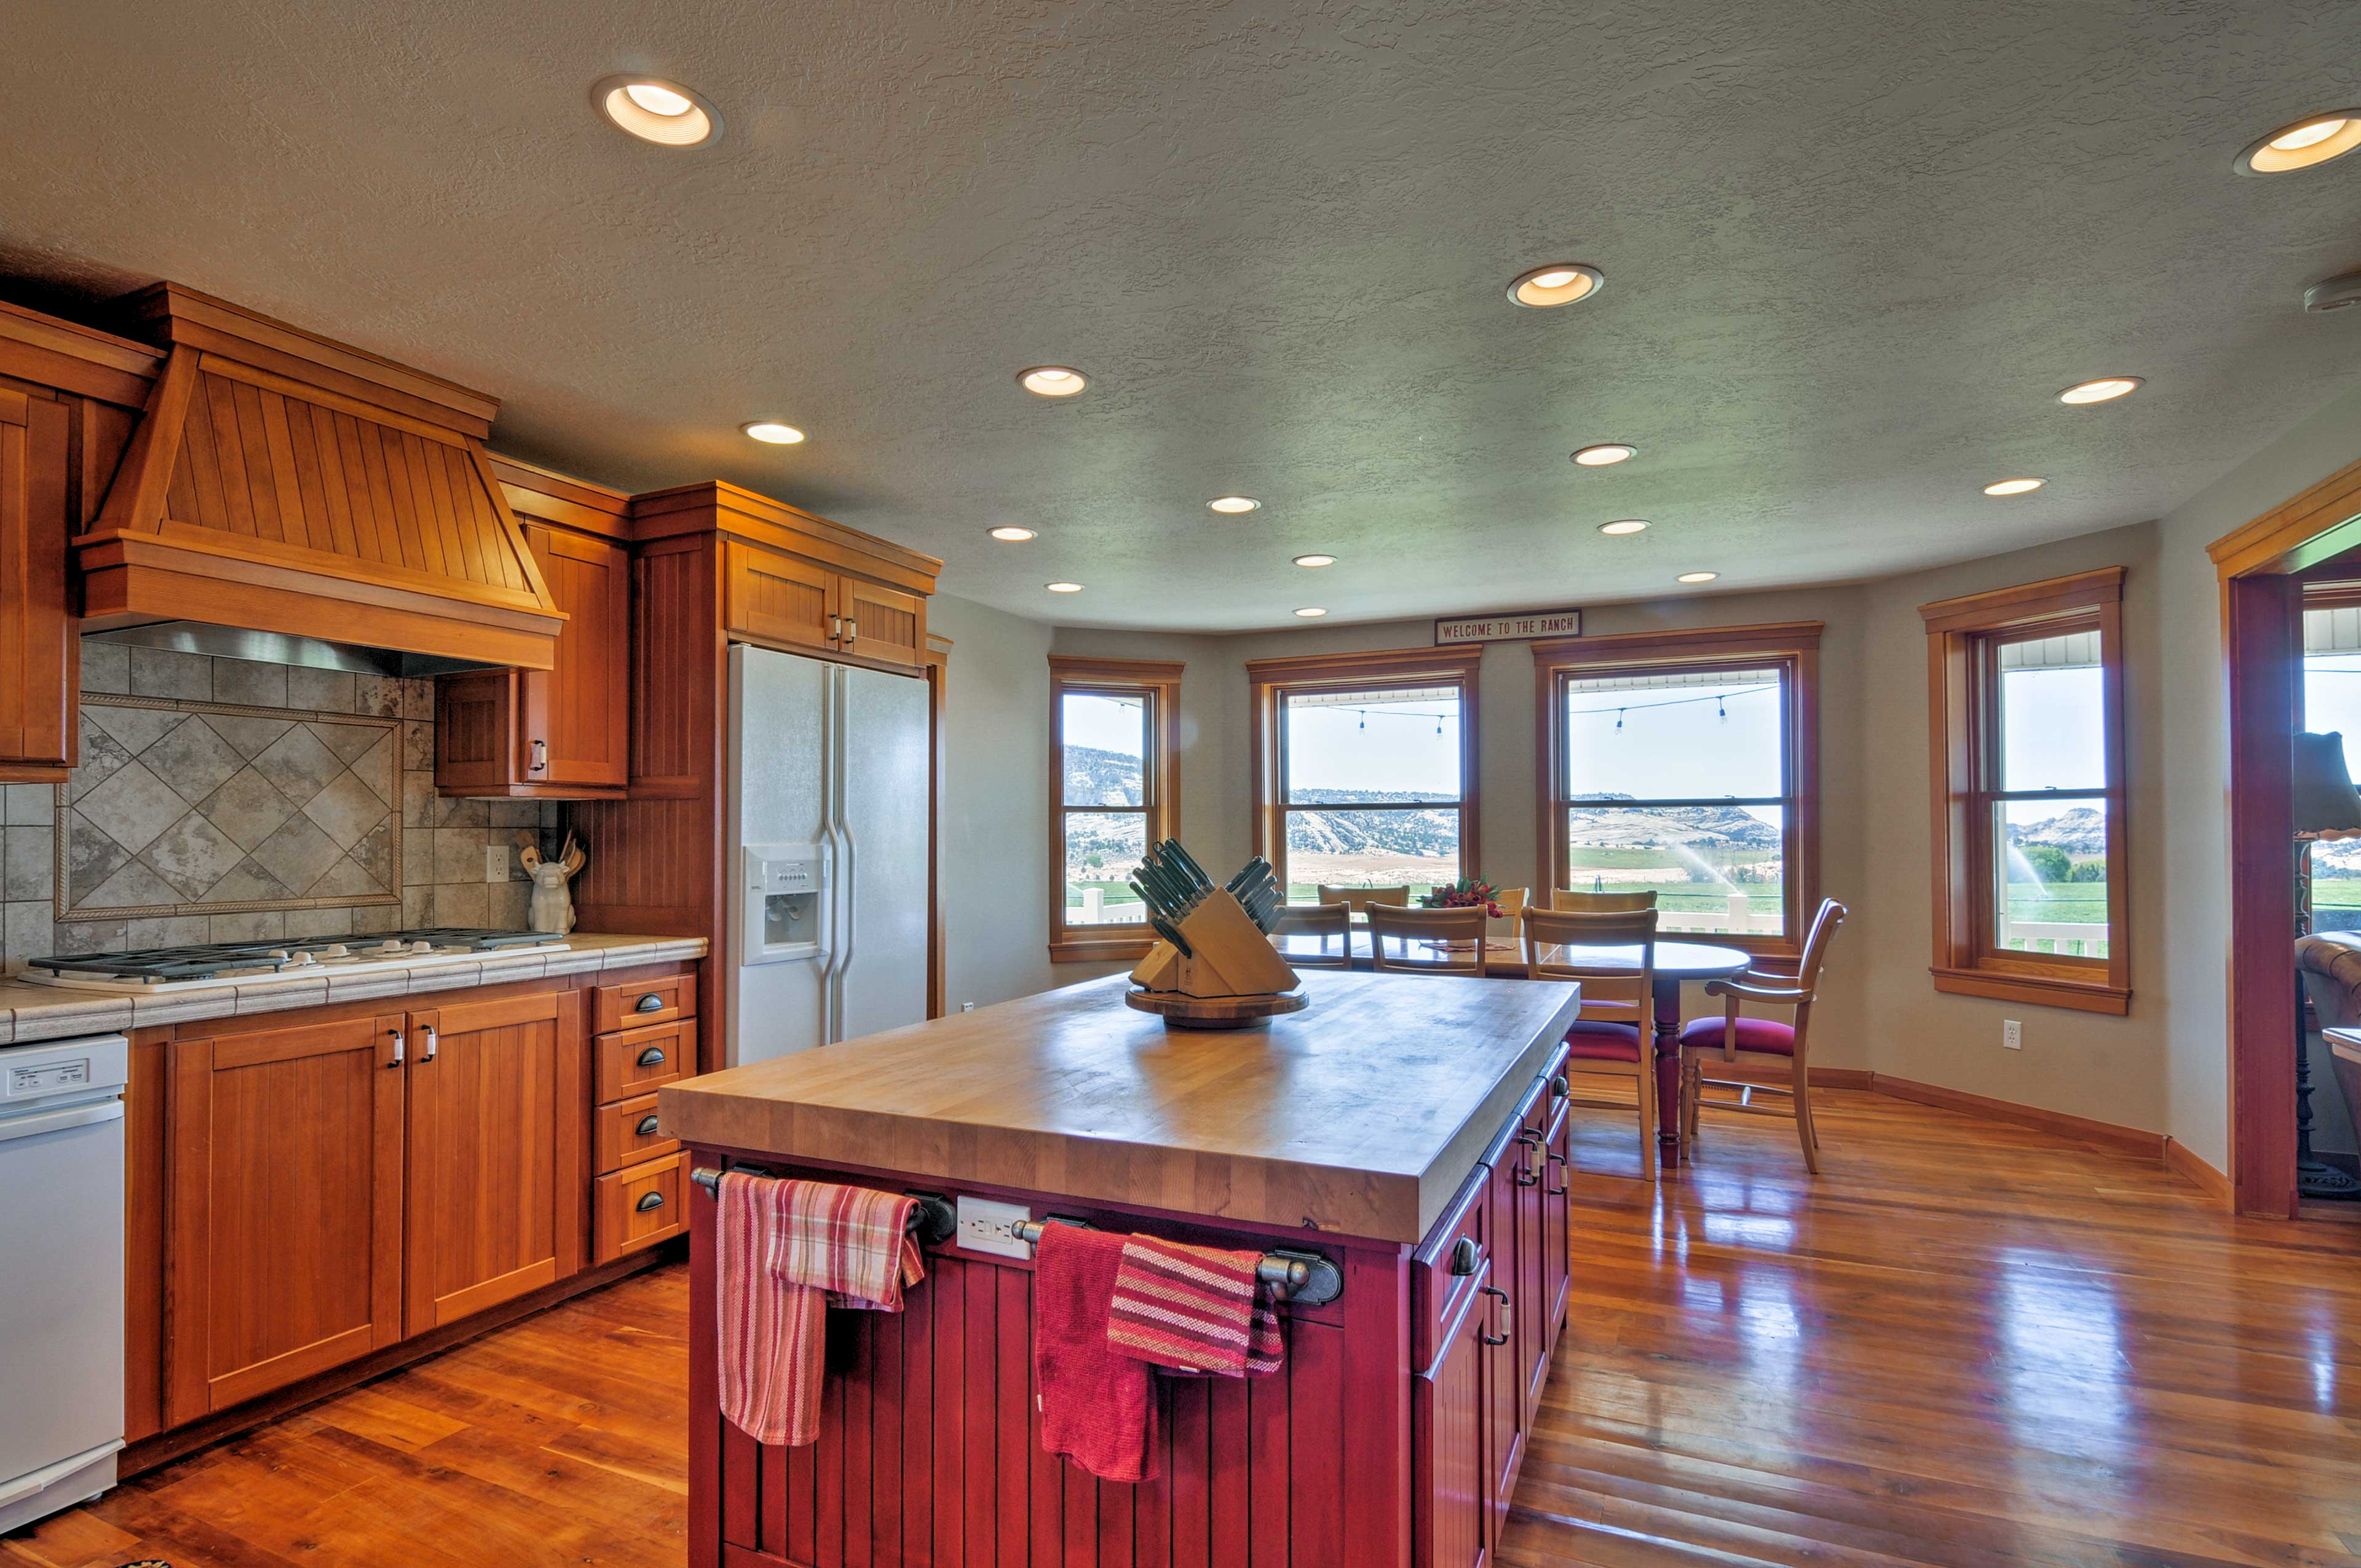 Admire views of the ranch from the kitchen's picture windows.